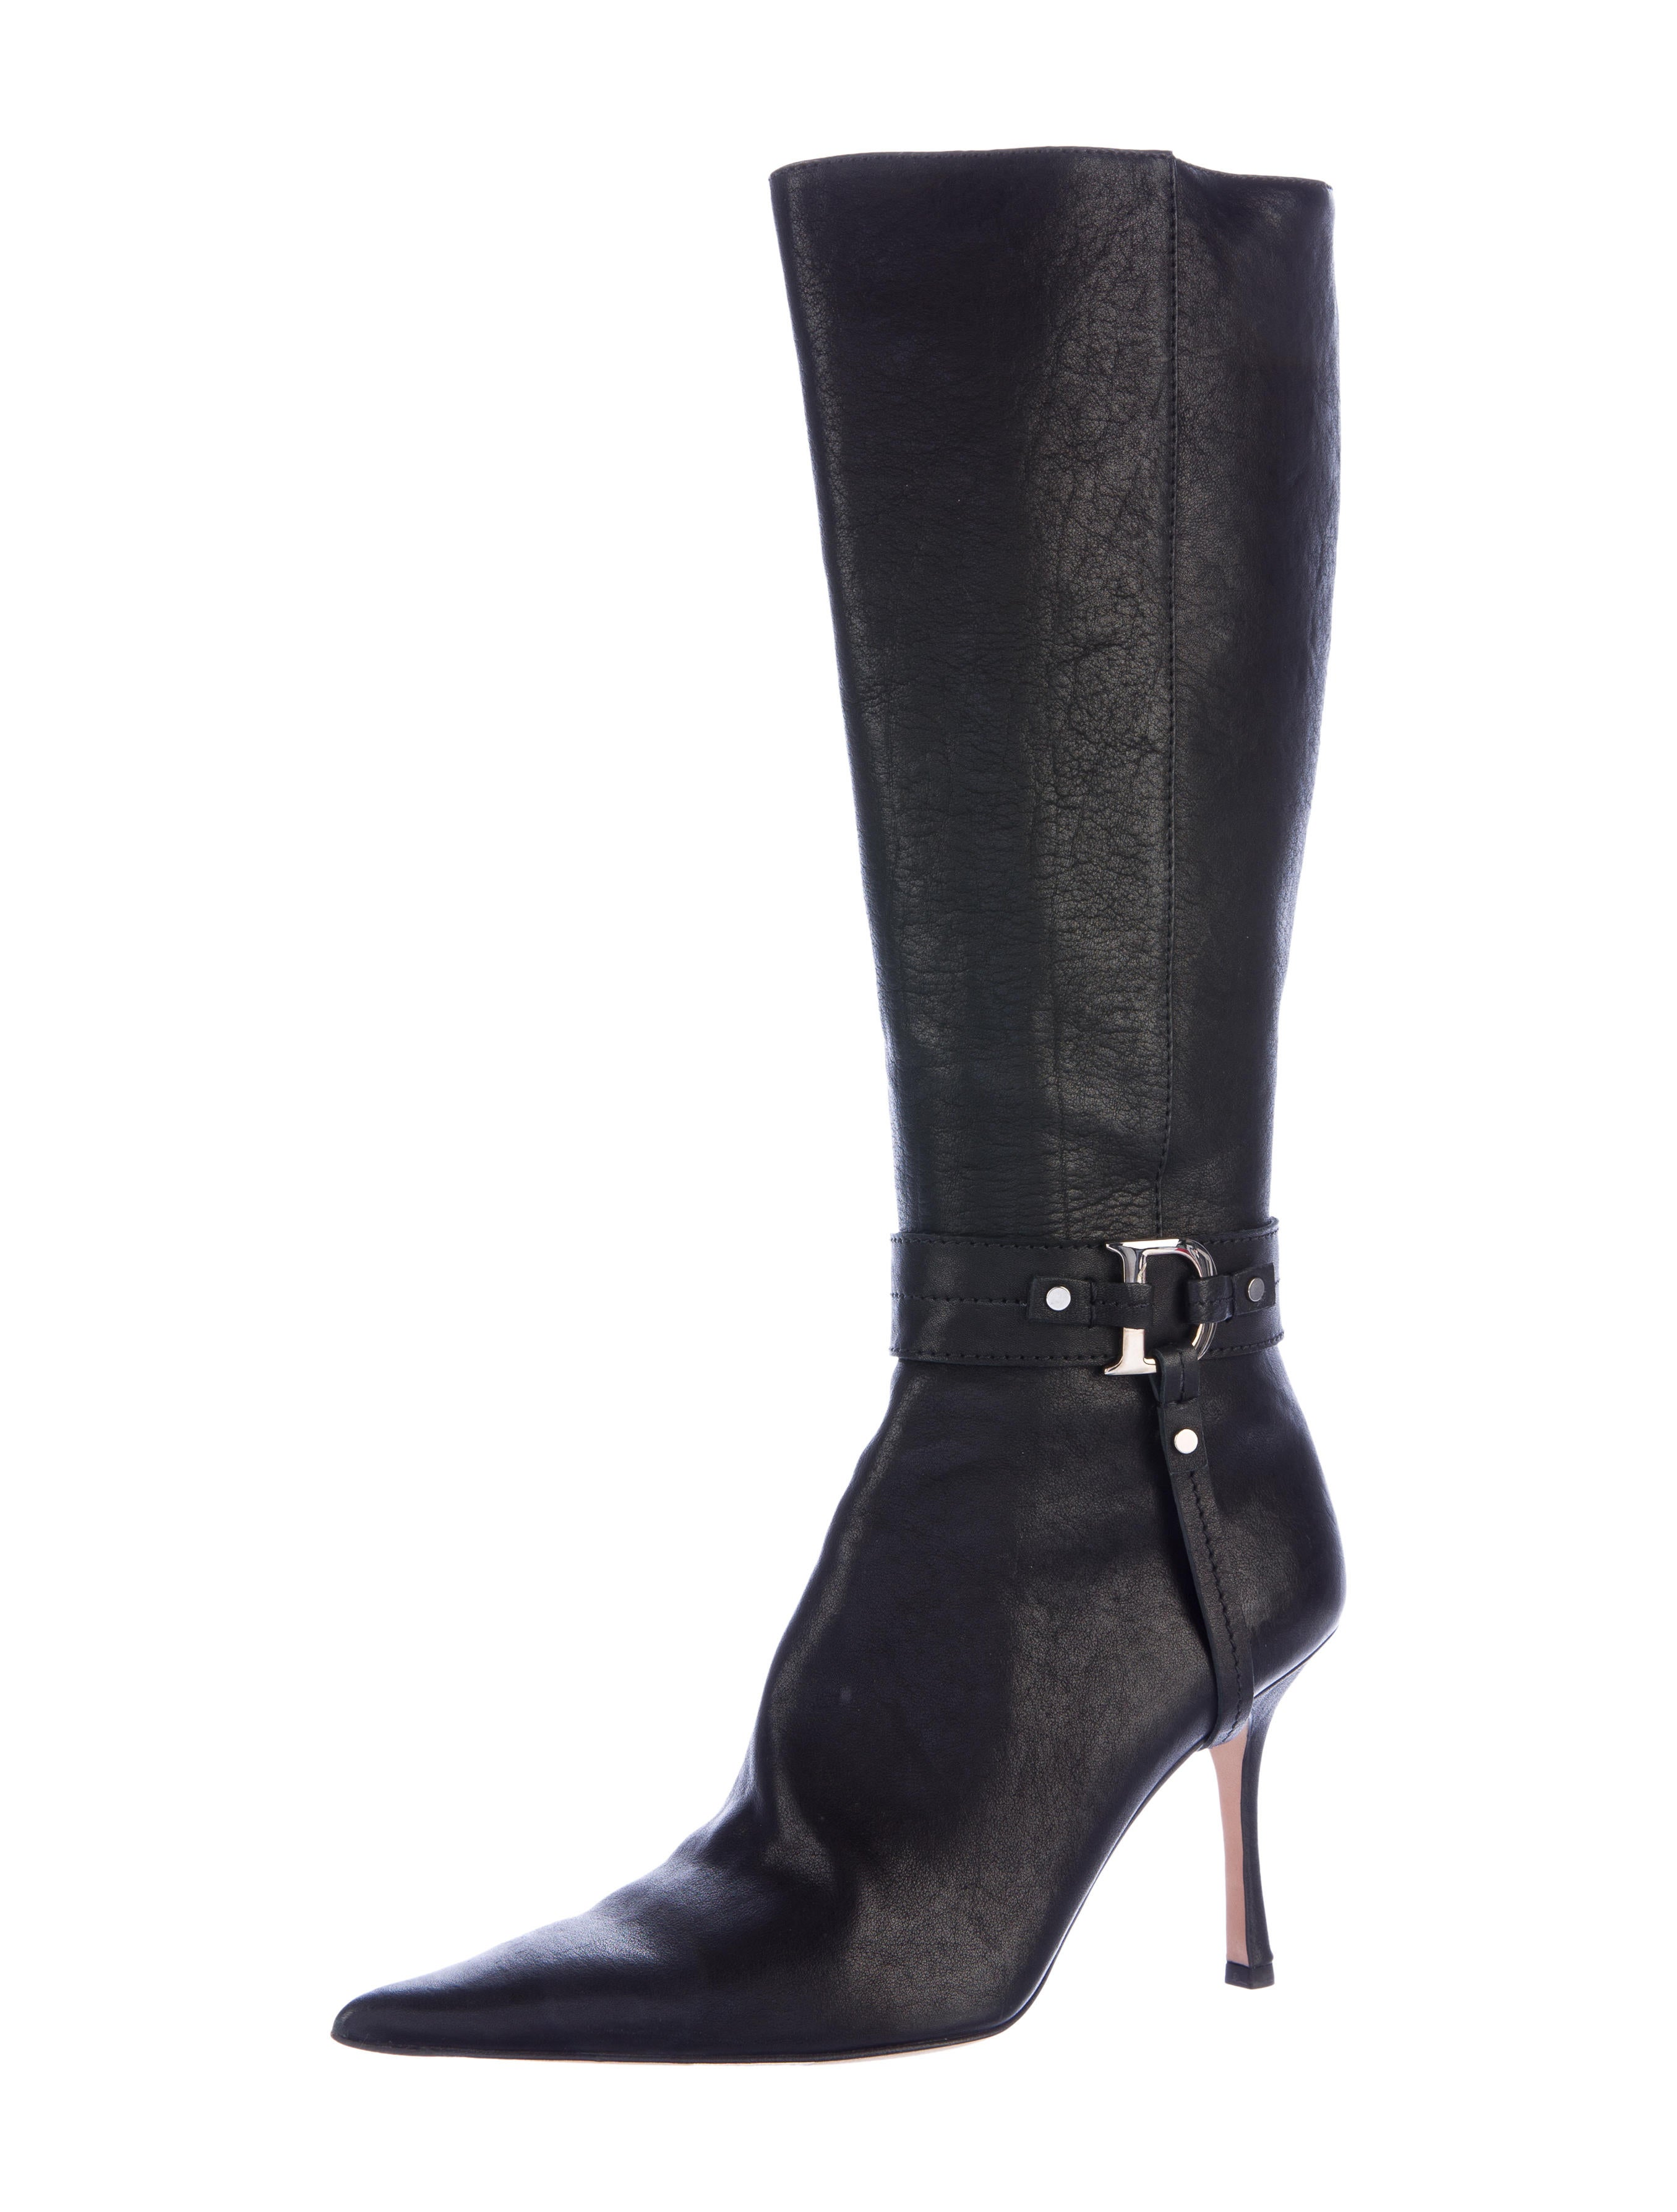 christian pointed toe knee high boots shoes